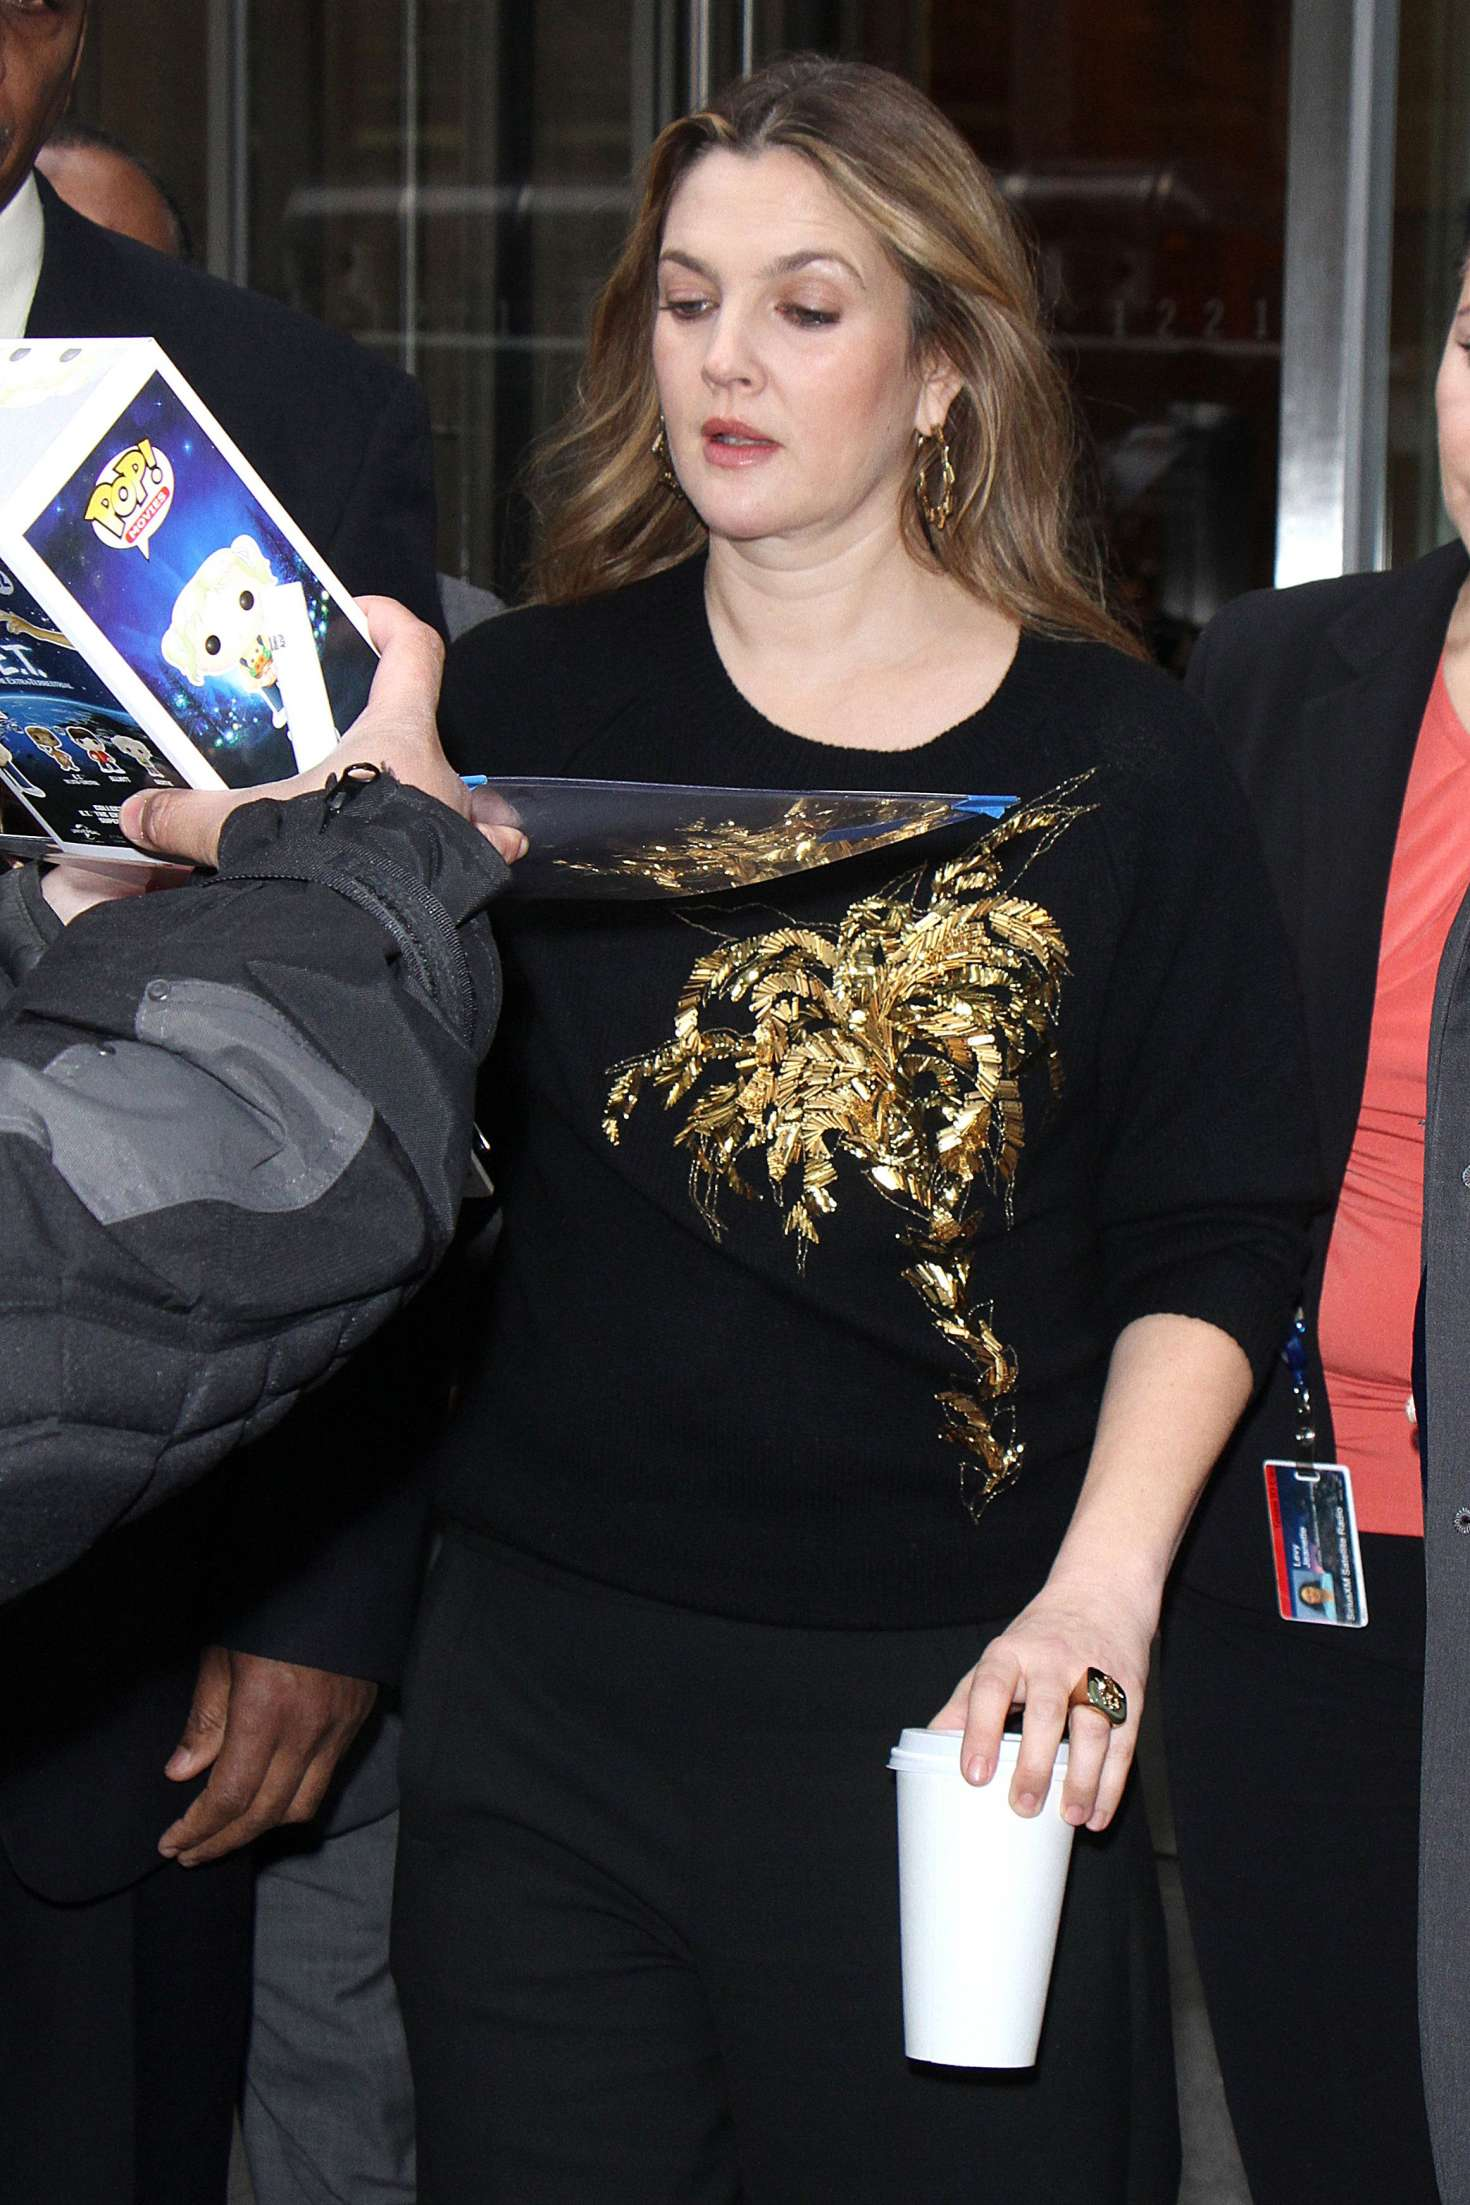 Drew Barrymore greets fans while out promoting 'Santa Clarita Diet' in New York